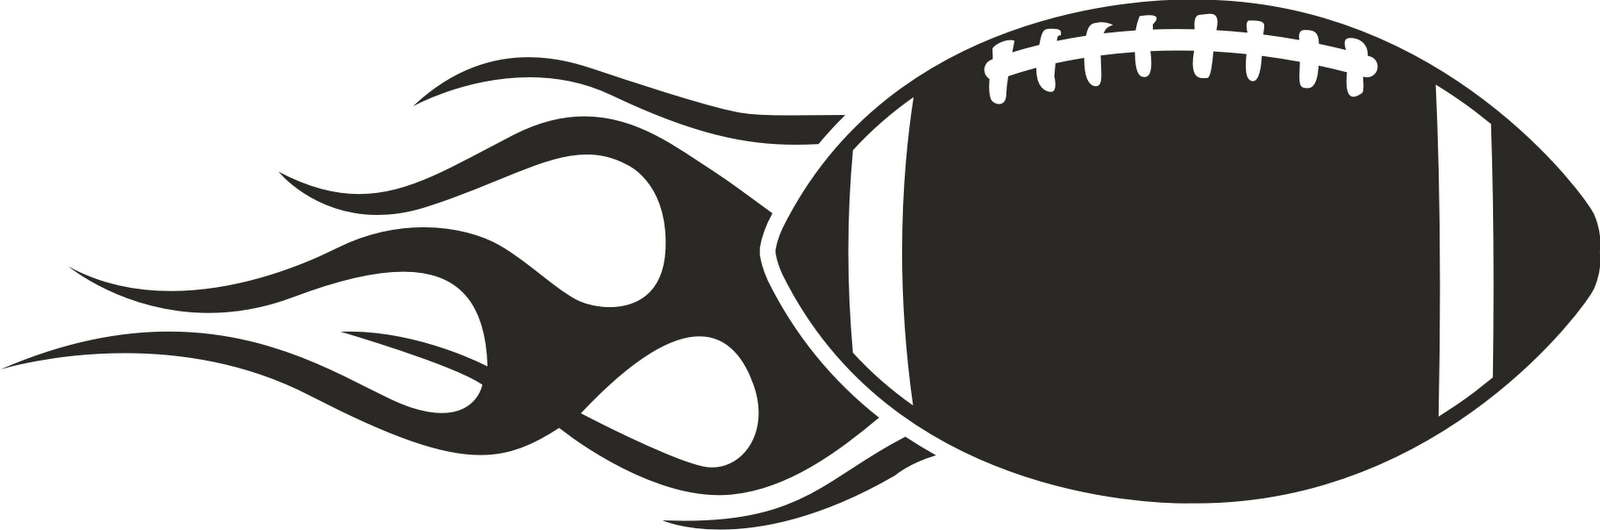 Football clip art to color free clipart images